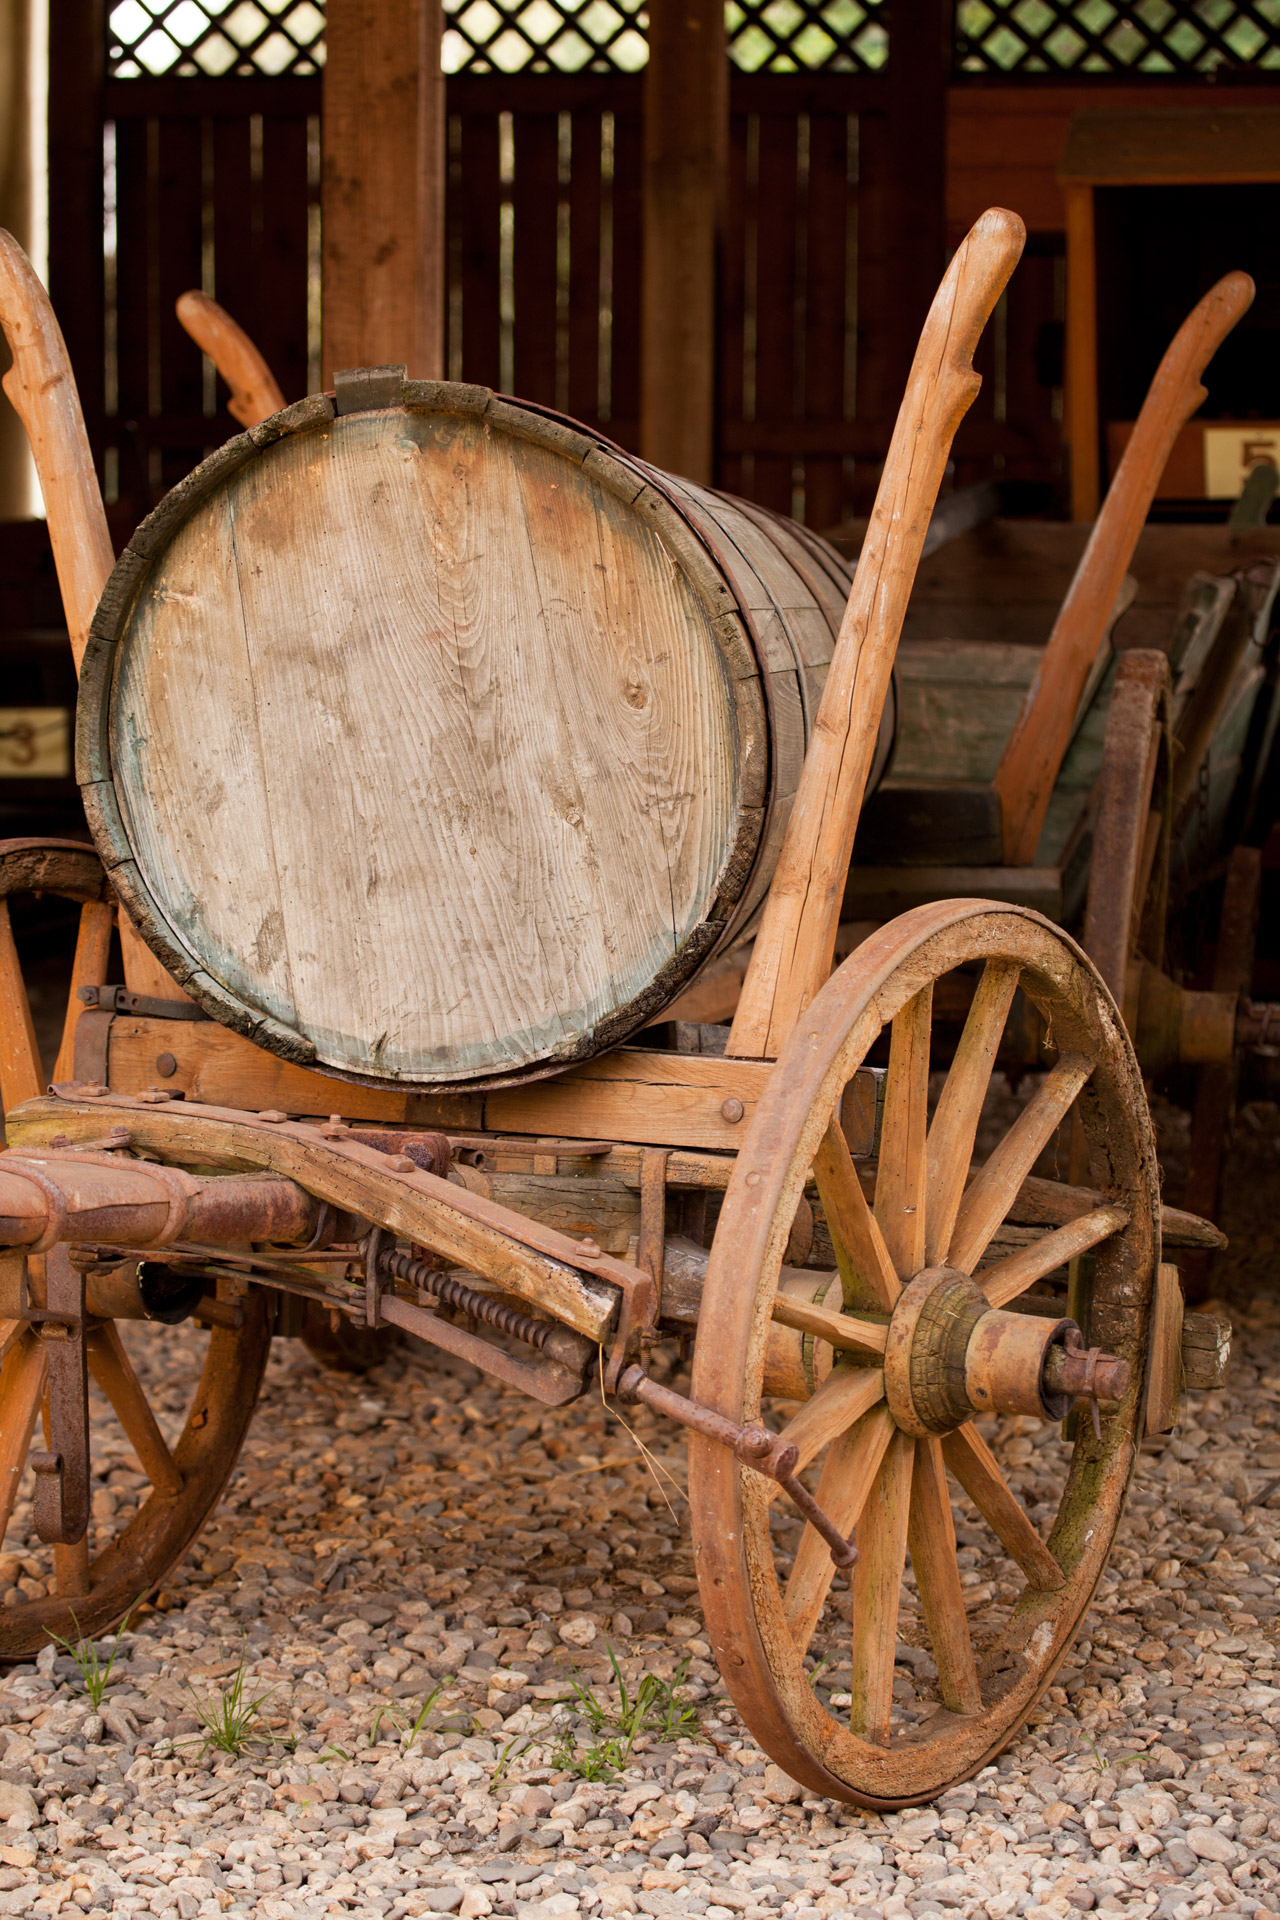 Old Wooden Wagon Free Stock Photo - Public Domain Pictures